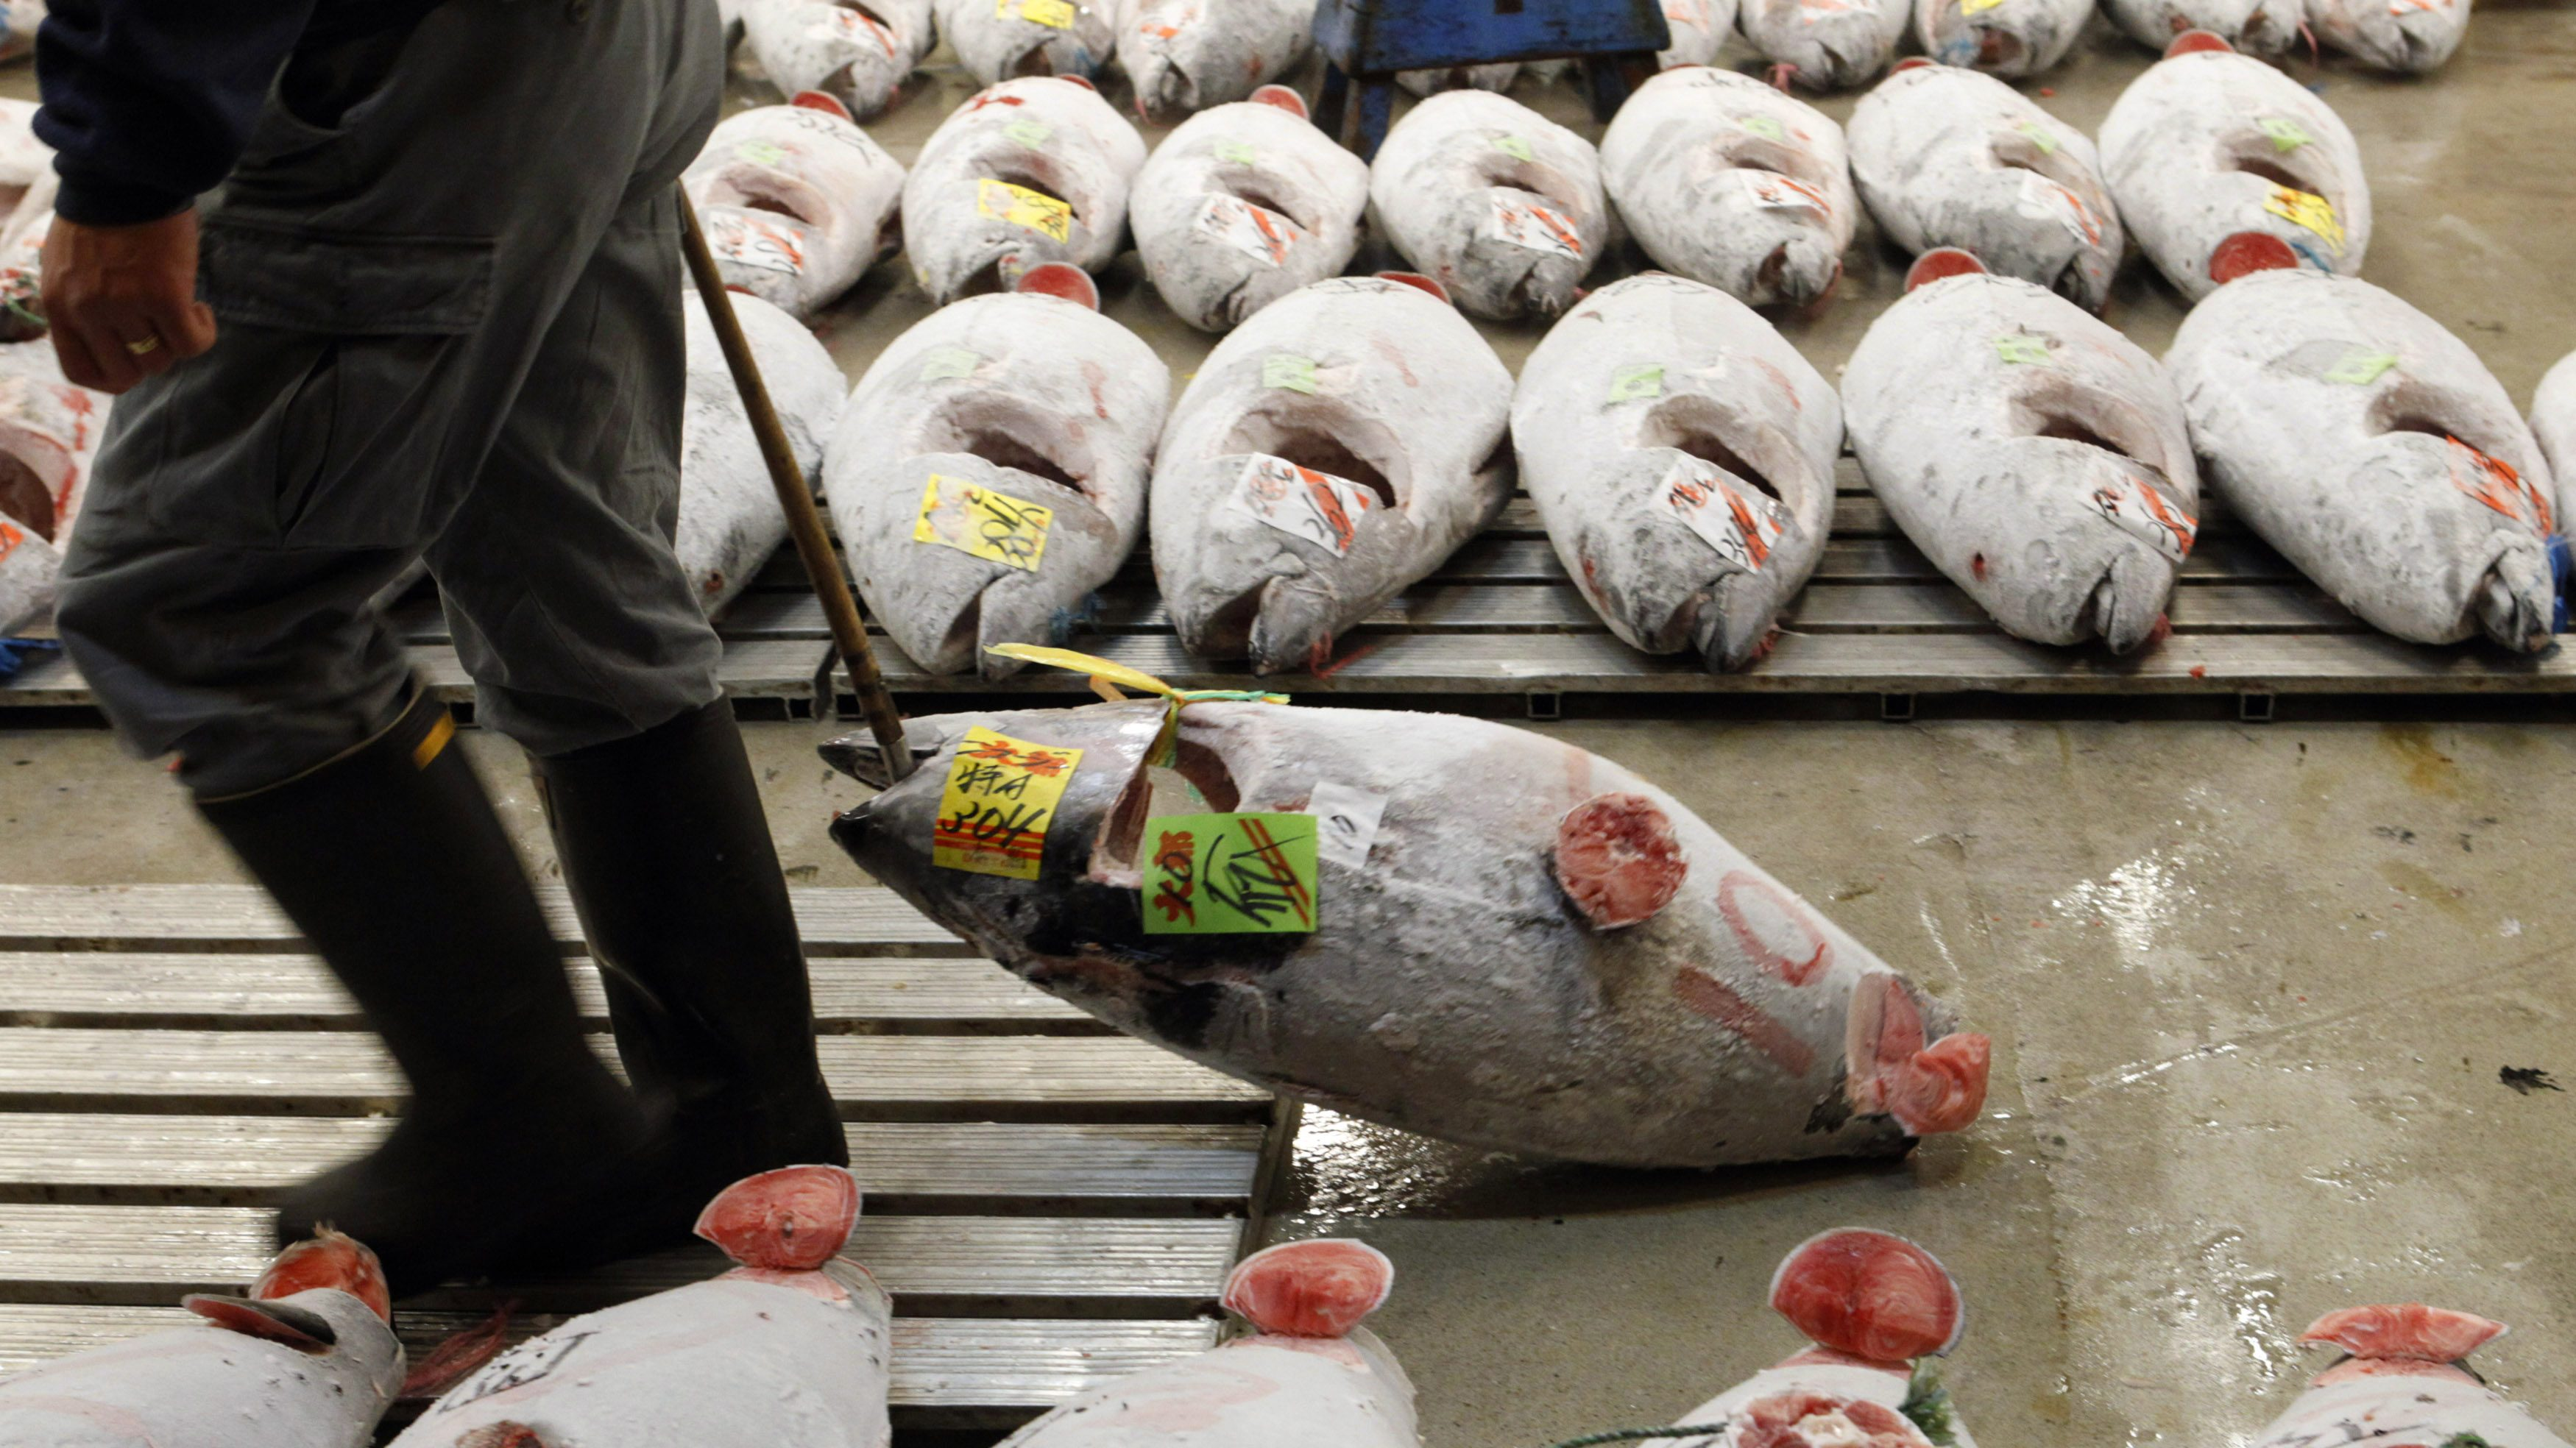 A wholesaler carries a frozen tuna between tuna laid out in rows at Tsukiji fish market, Japan's largest fish auction house, in Tokyo March 13, 2010.